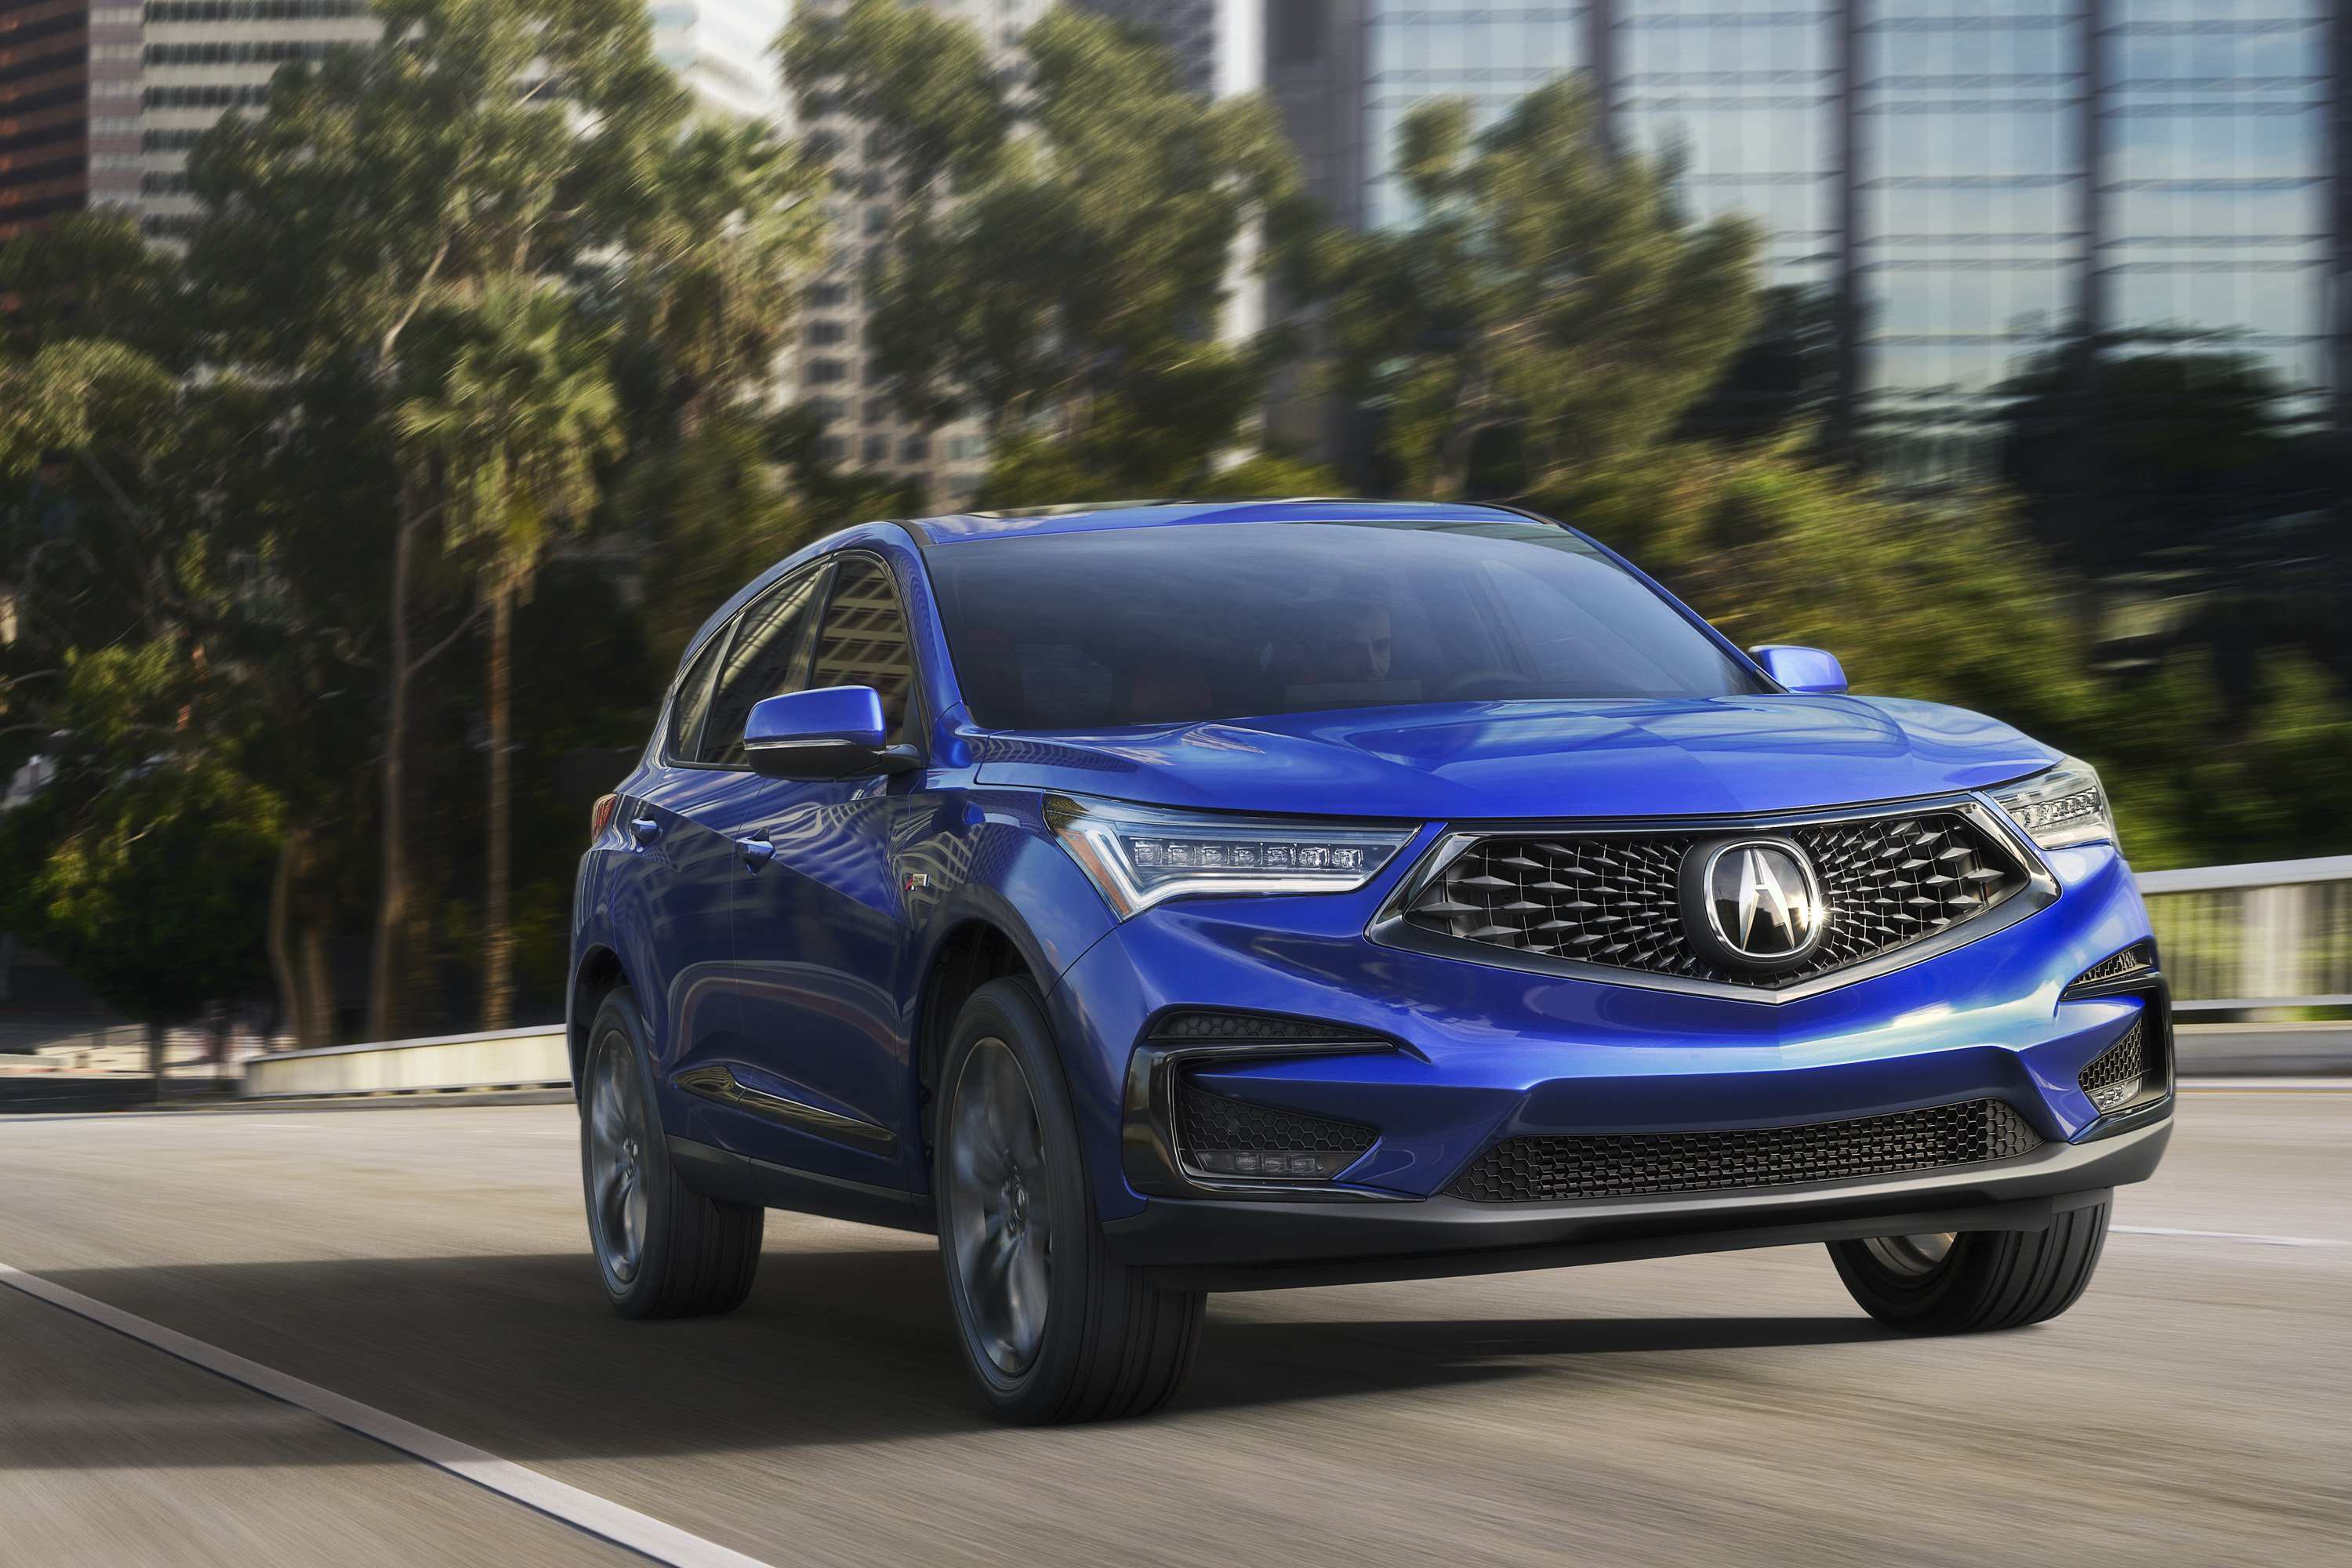 14 Gallery of 2019 Acura Rdx Changes Prices for 2019 Acura Rdx Changes